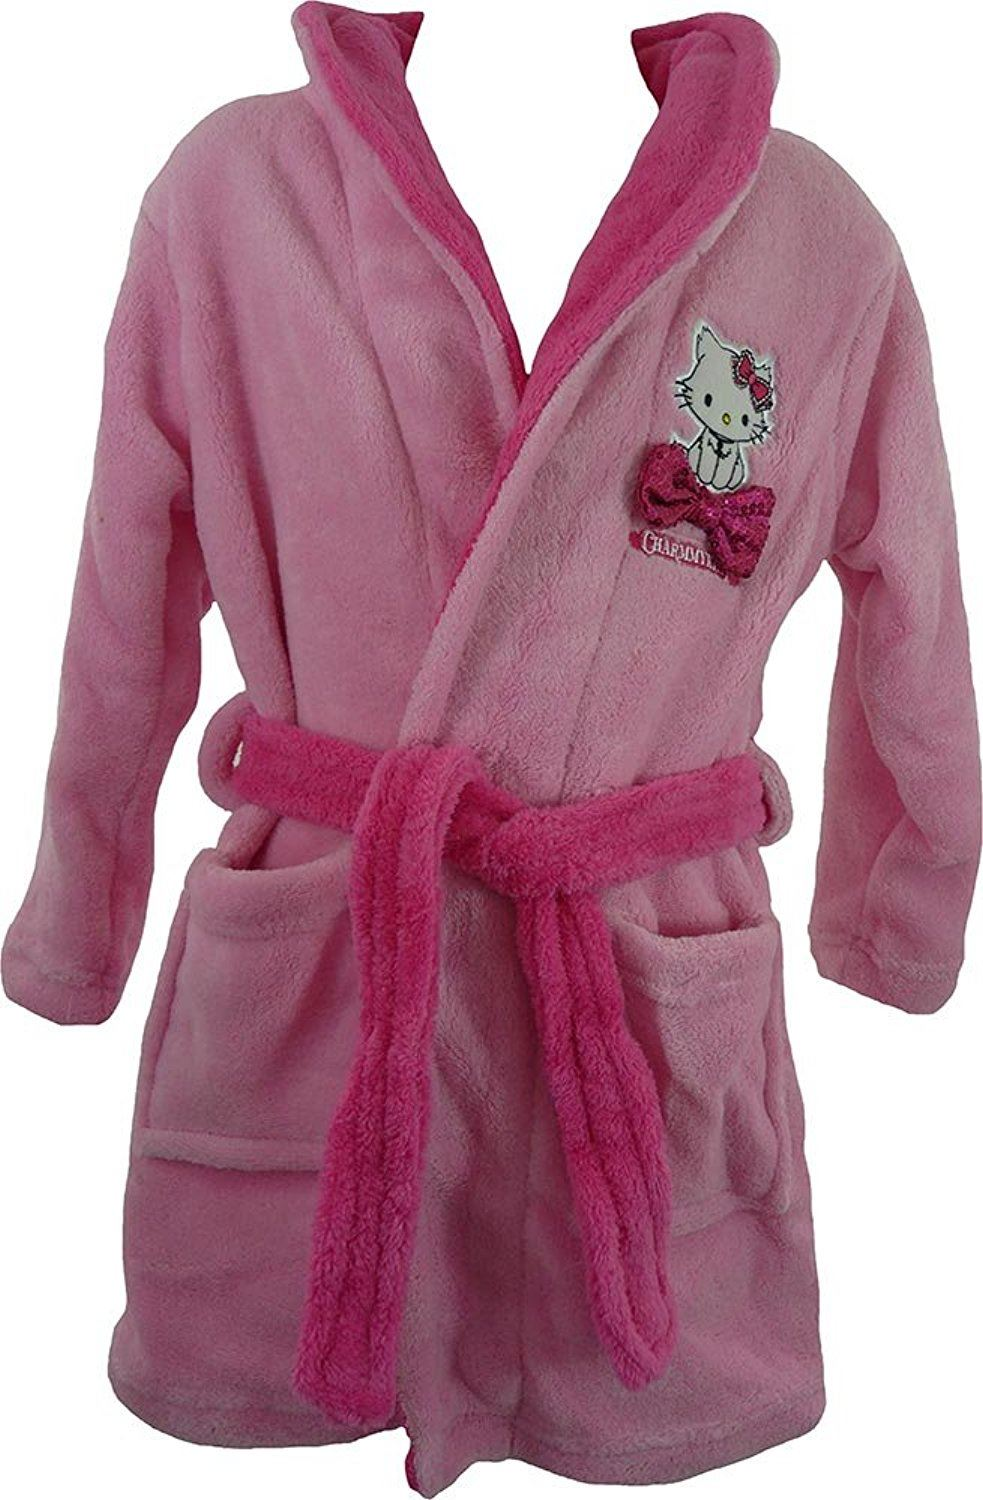 Filles robe de chambre peignoir disney princesses minnie mouse gel hello kitty ebay - Robe de chambre hello kitty ...